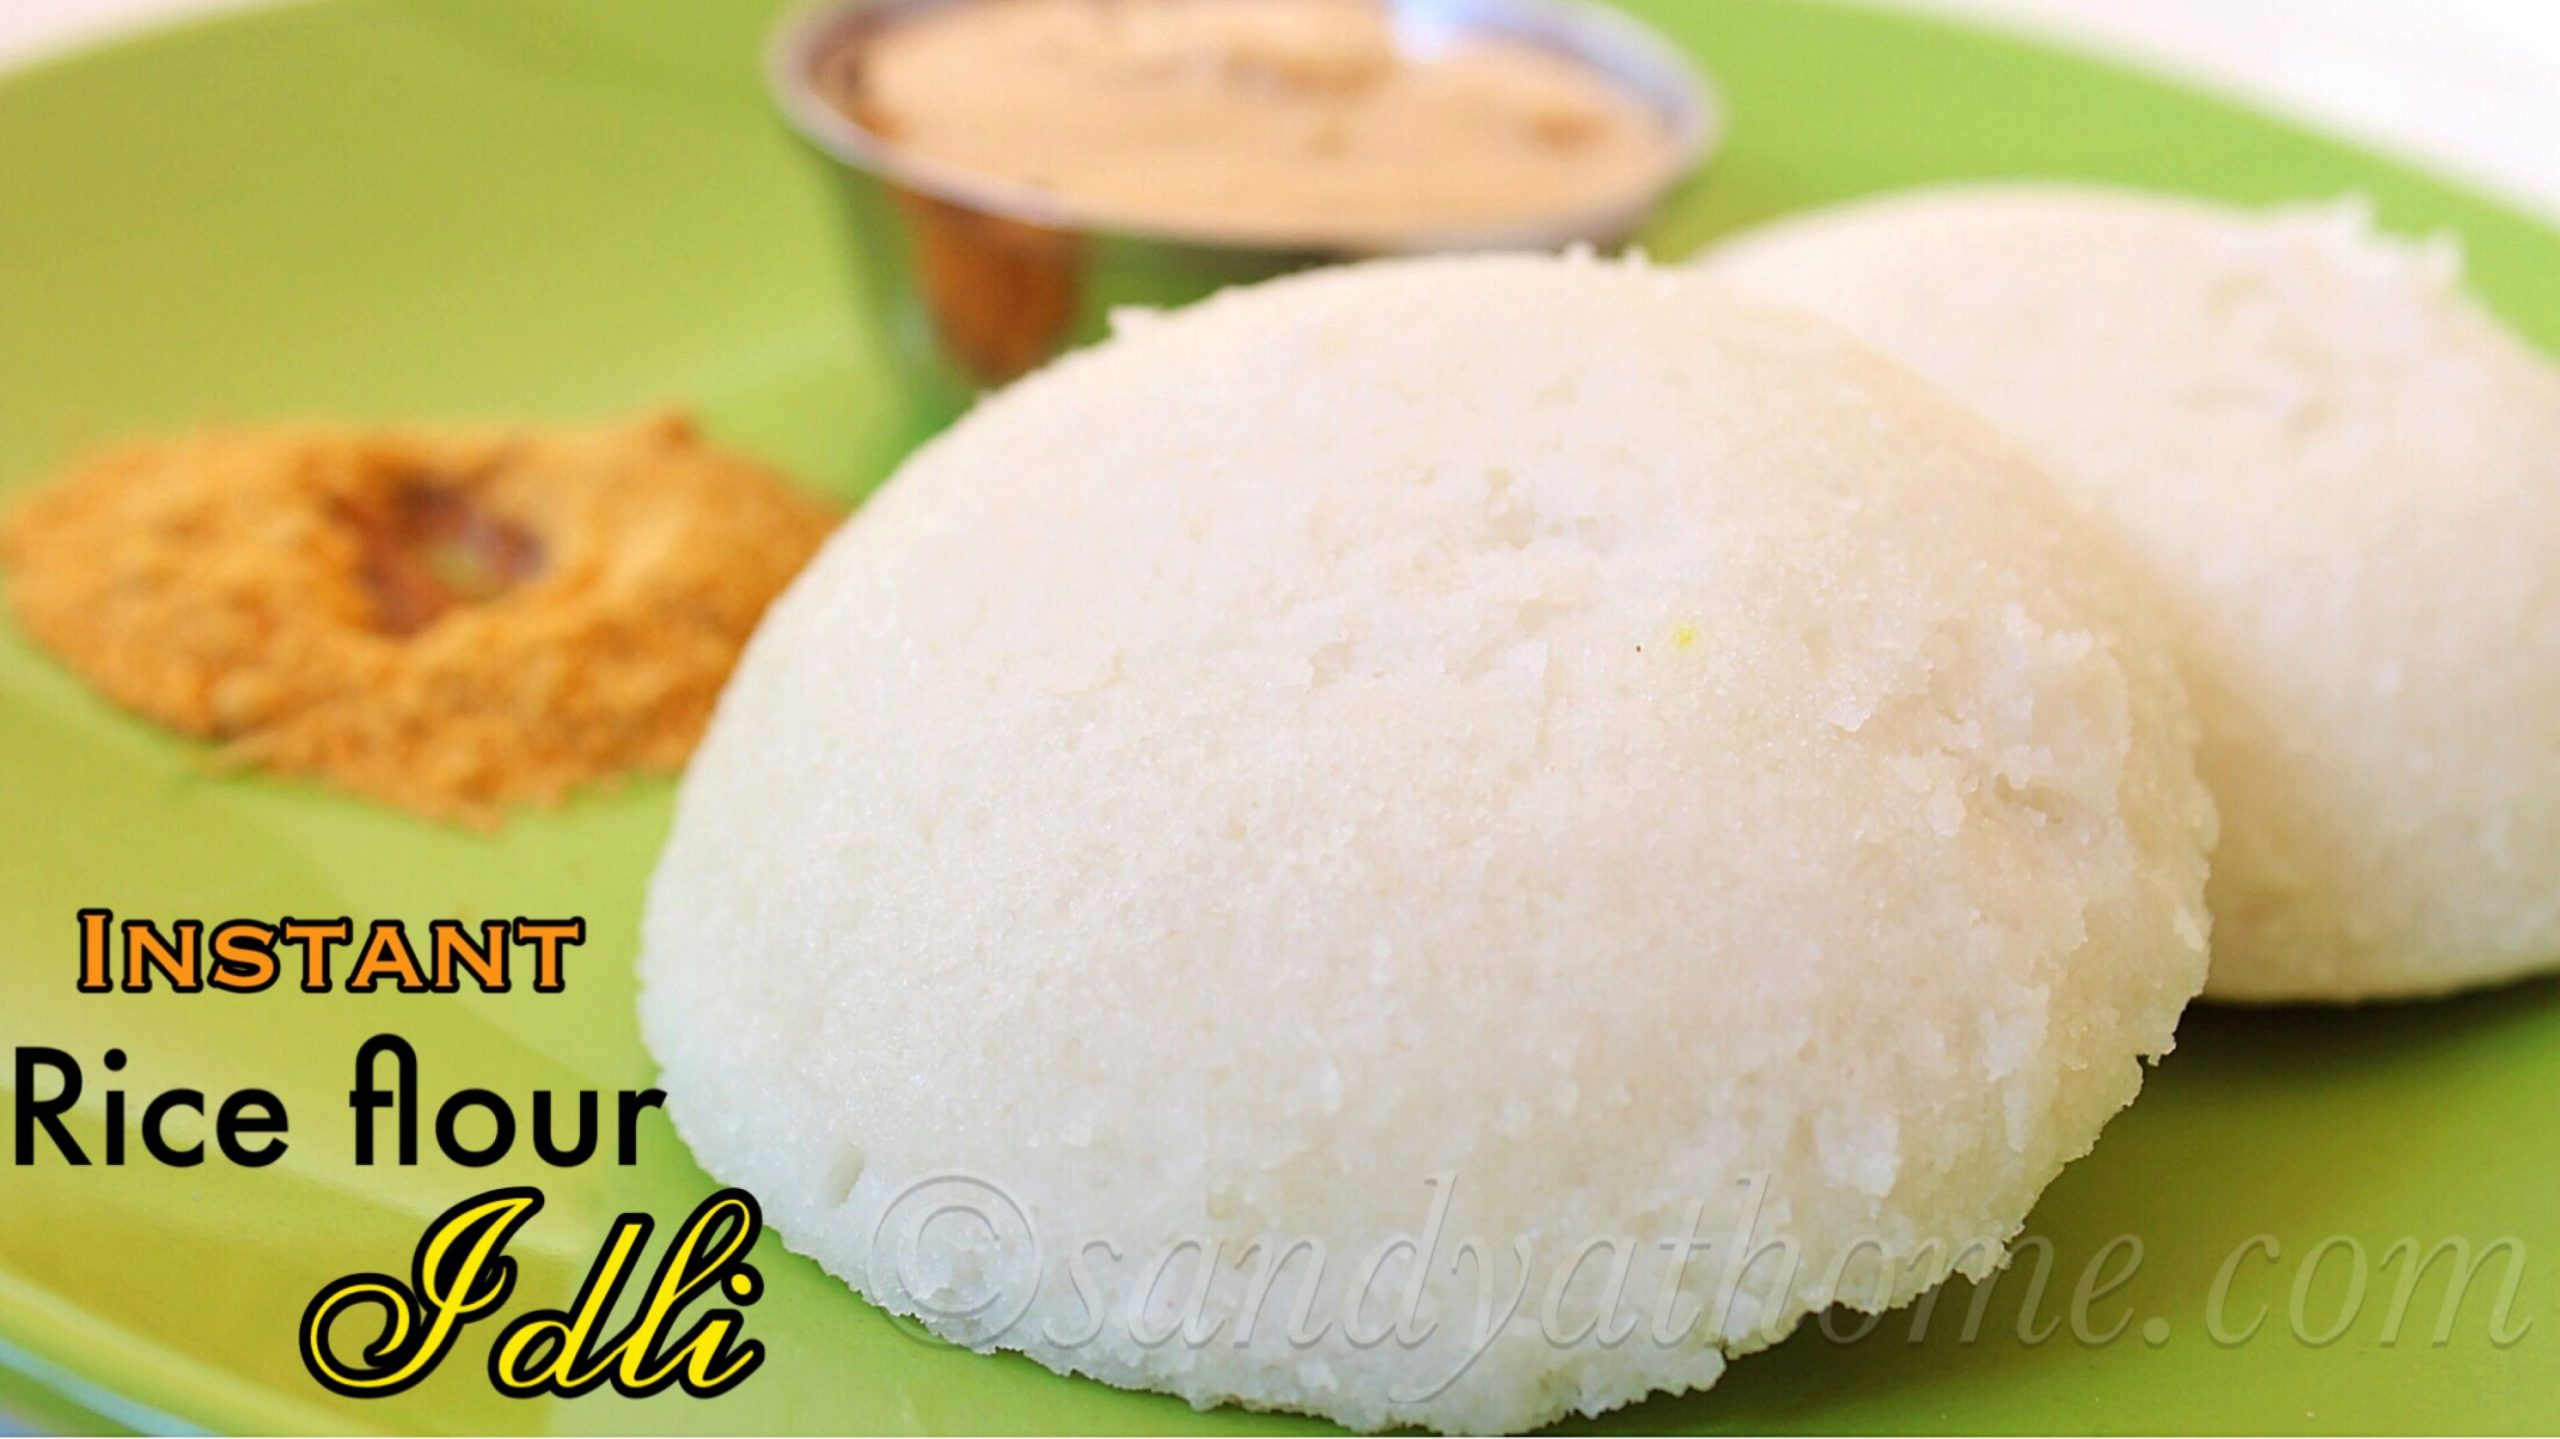 Rice flour idli recipe, Instant idli recipe | Sandhya's recipes